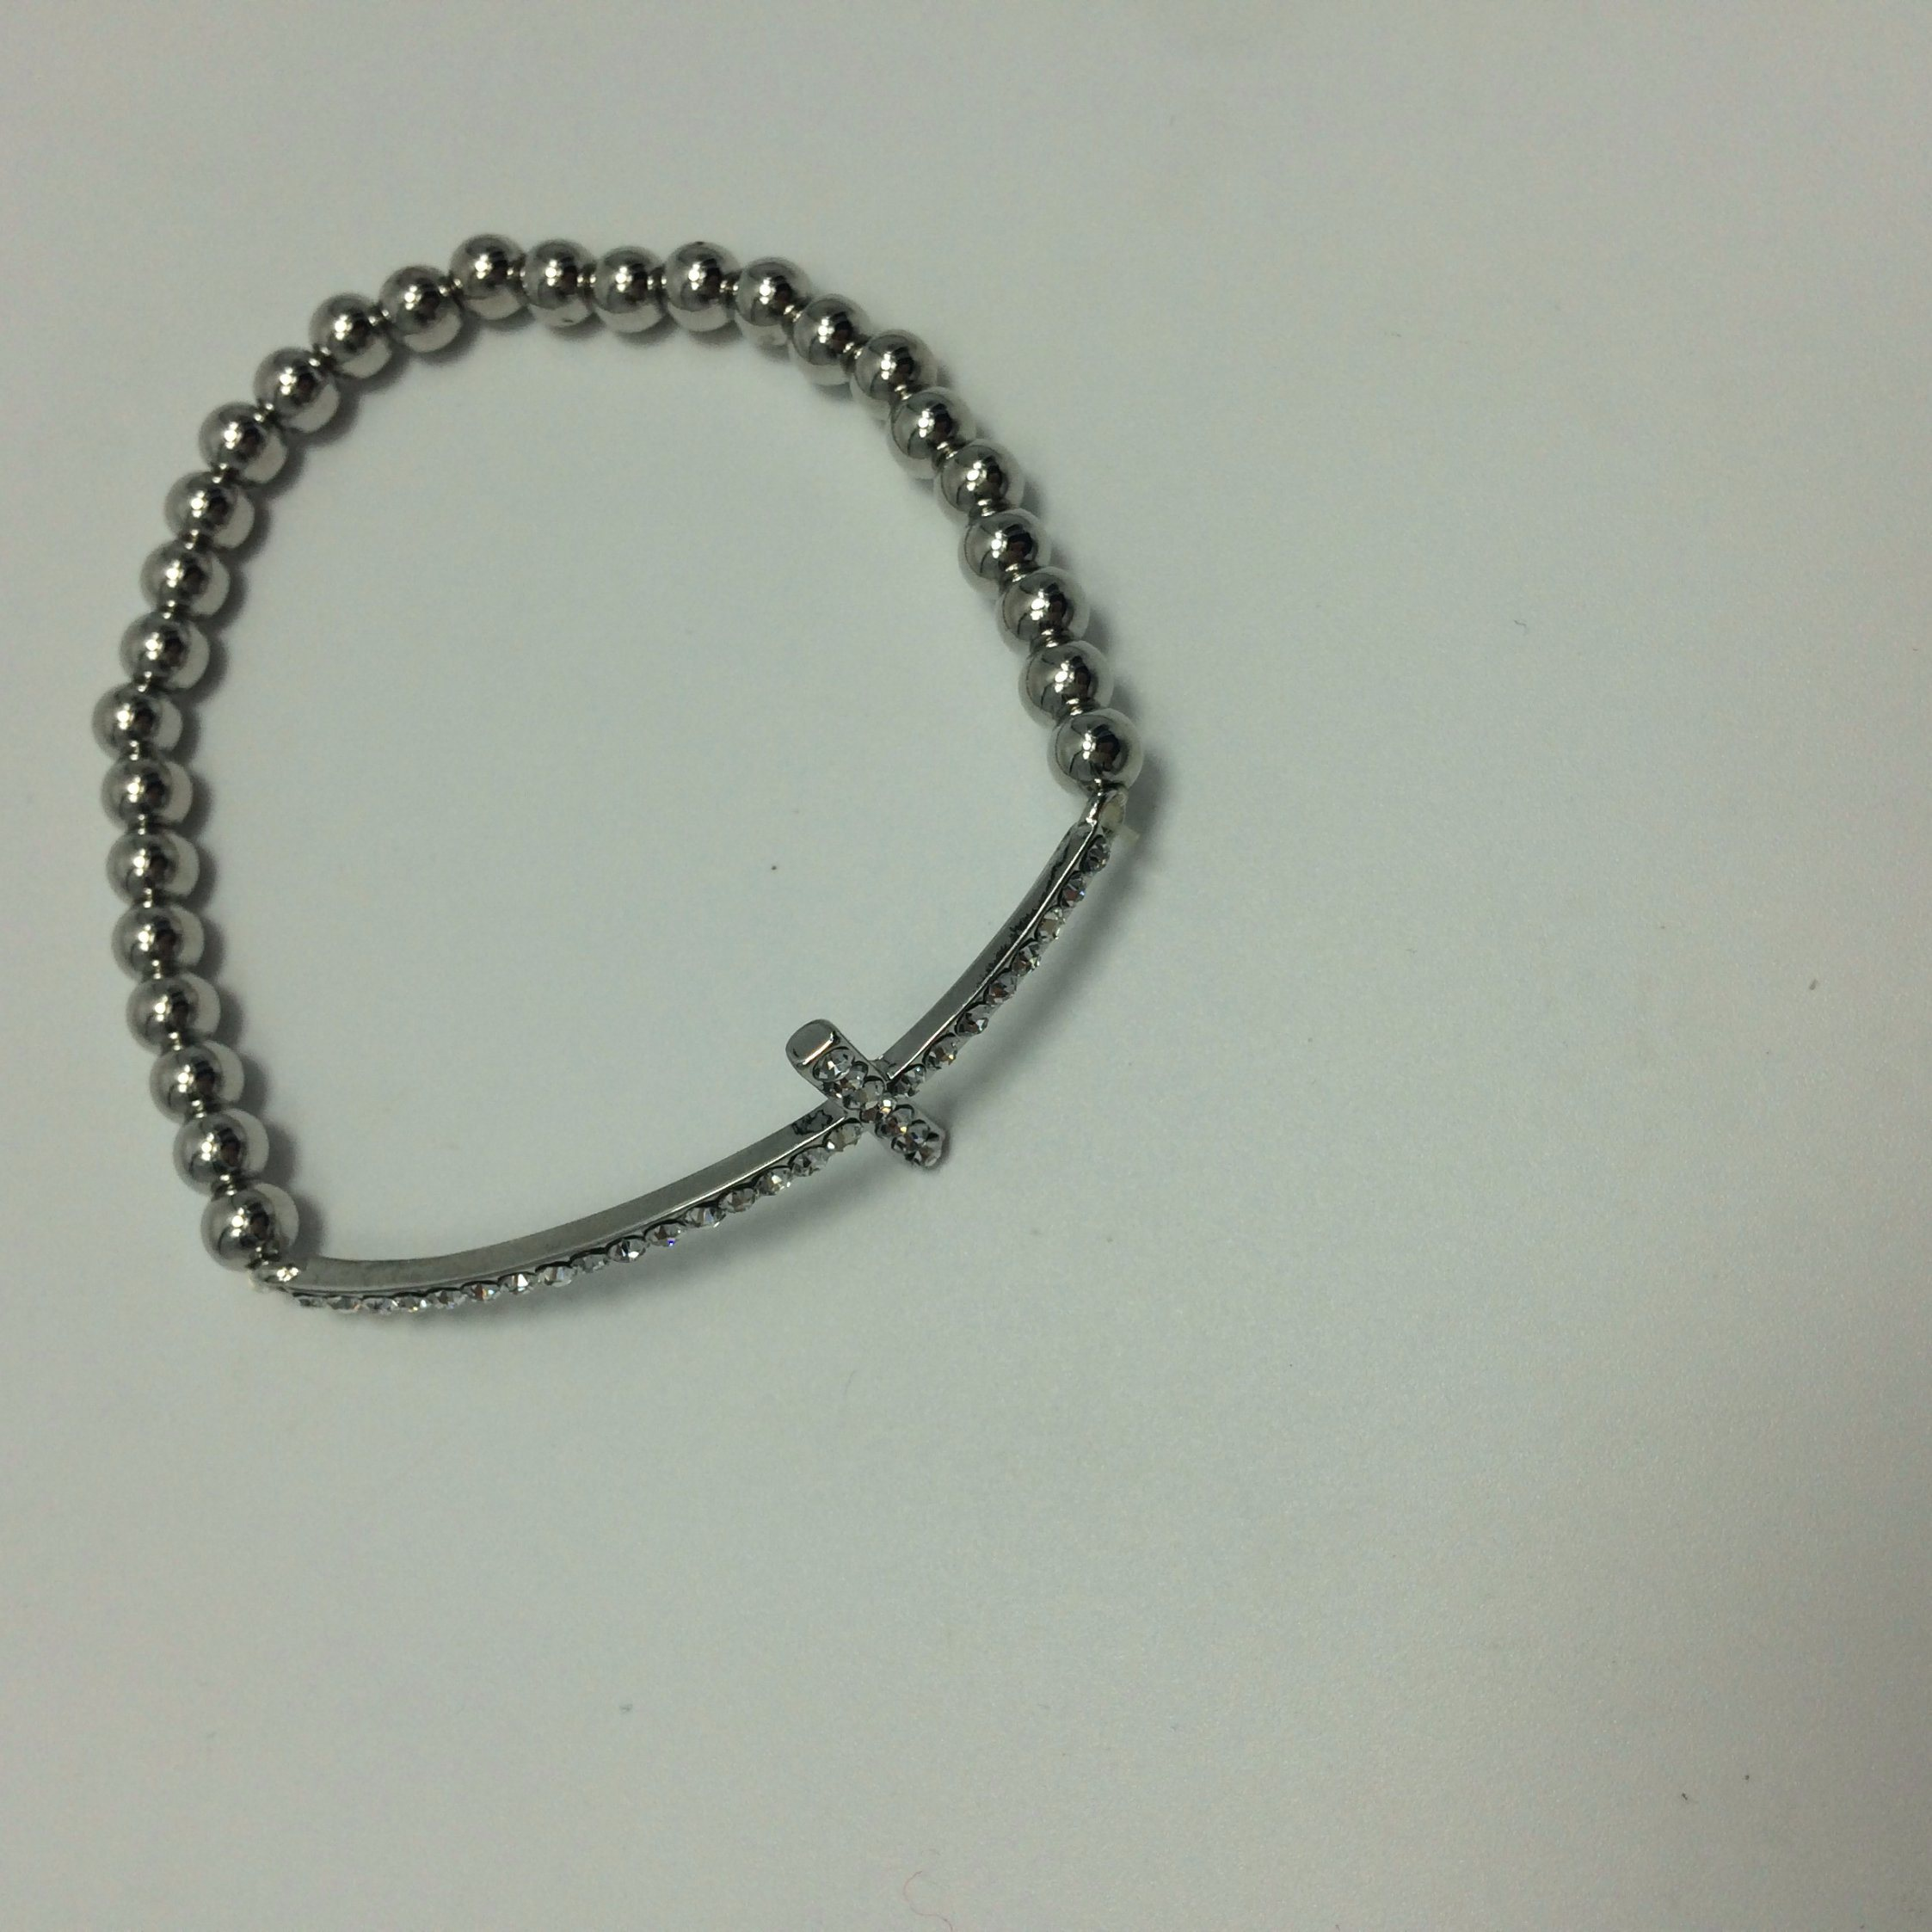 Metal Bracelet with Carving Best Quality Fashion Jewelry